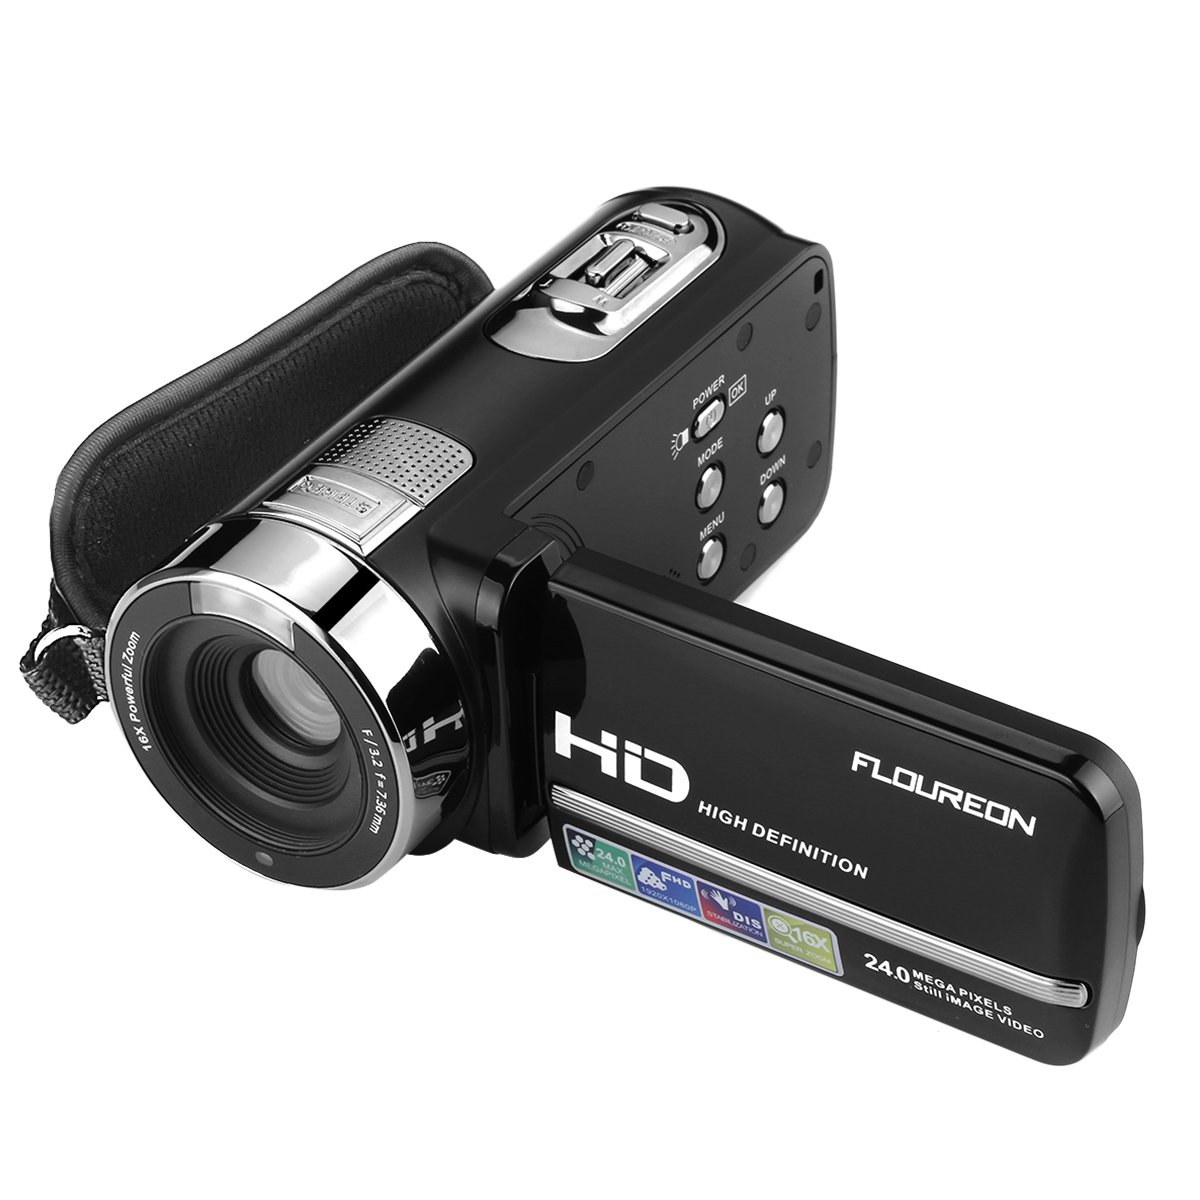 FLOUREON HD 1080P Camcorder Digital Video Camera DV 3.0 TFT LCD Screen 16x Zoom 270 Degrees Rotation for Sport/Youtube/Short Films Video Recording Dark